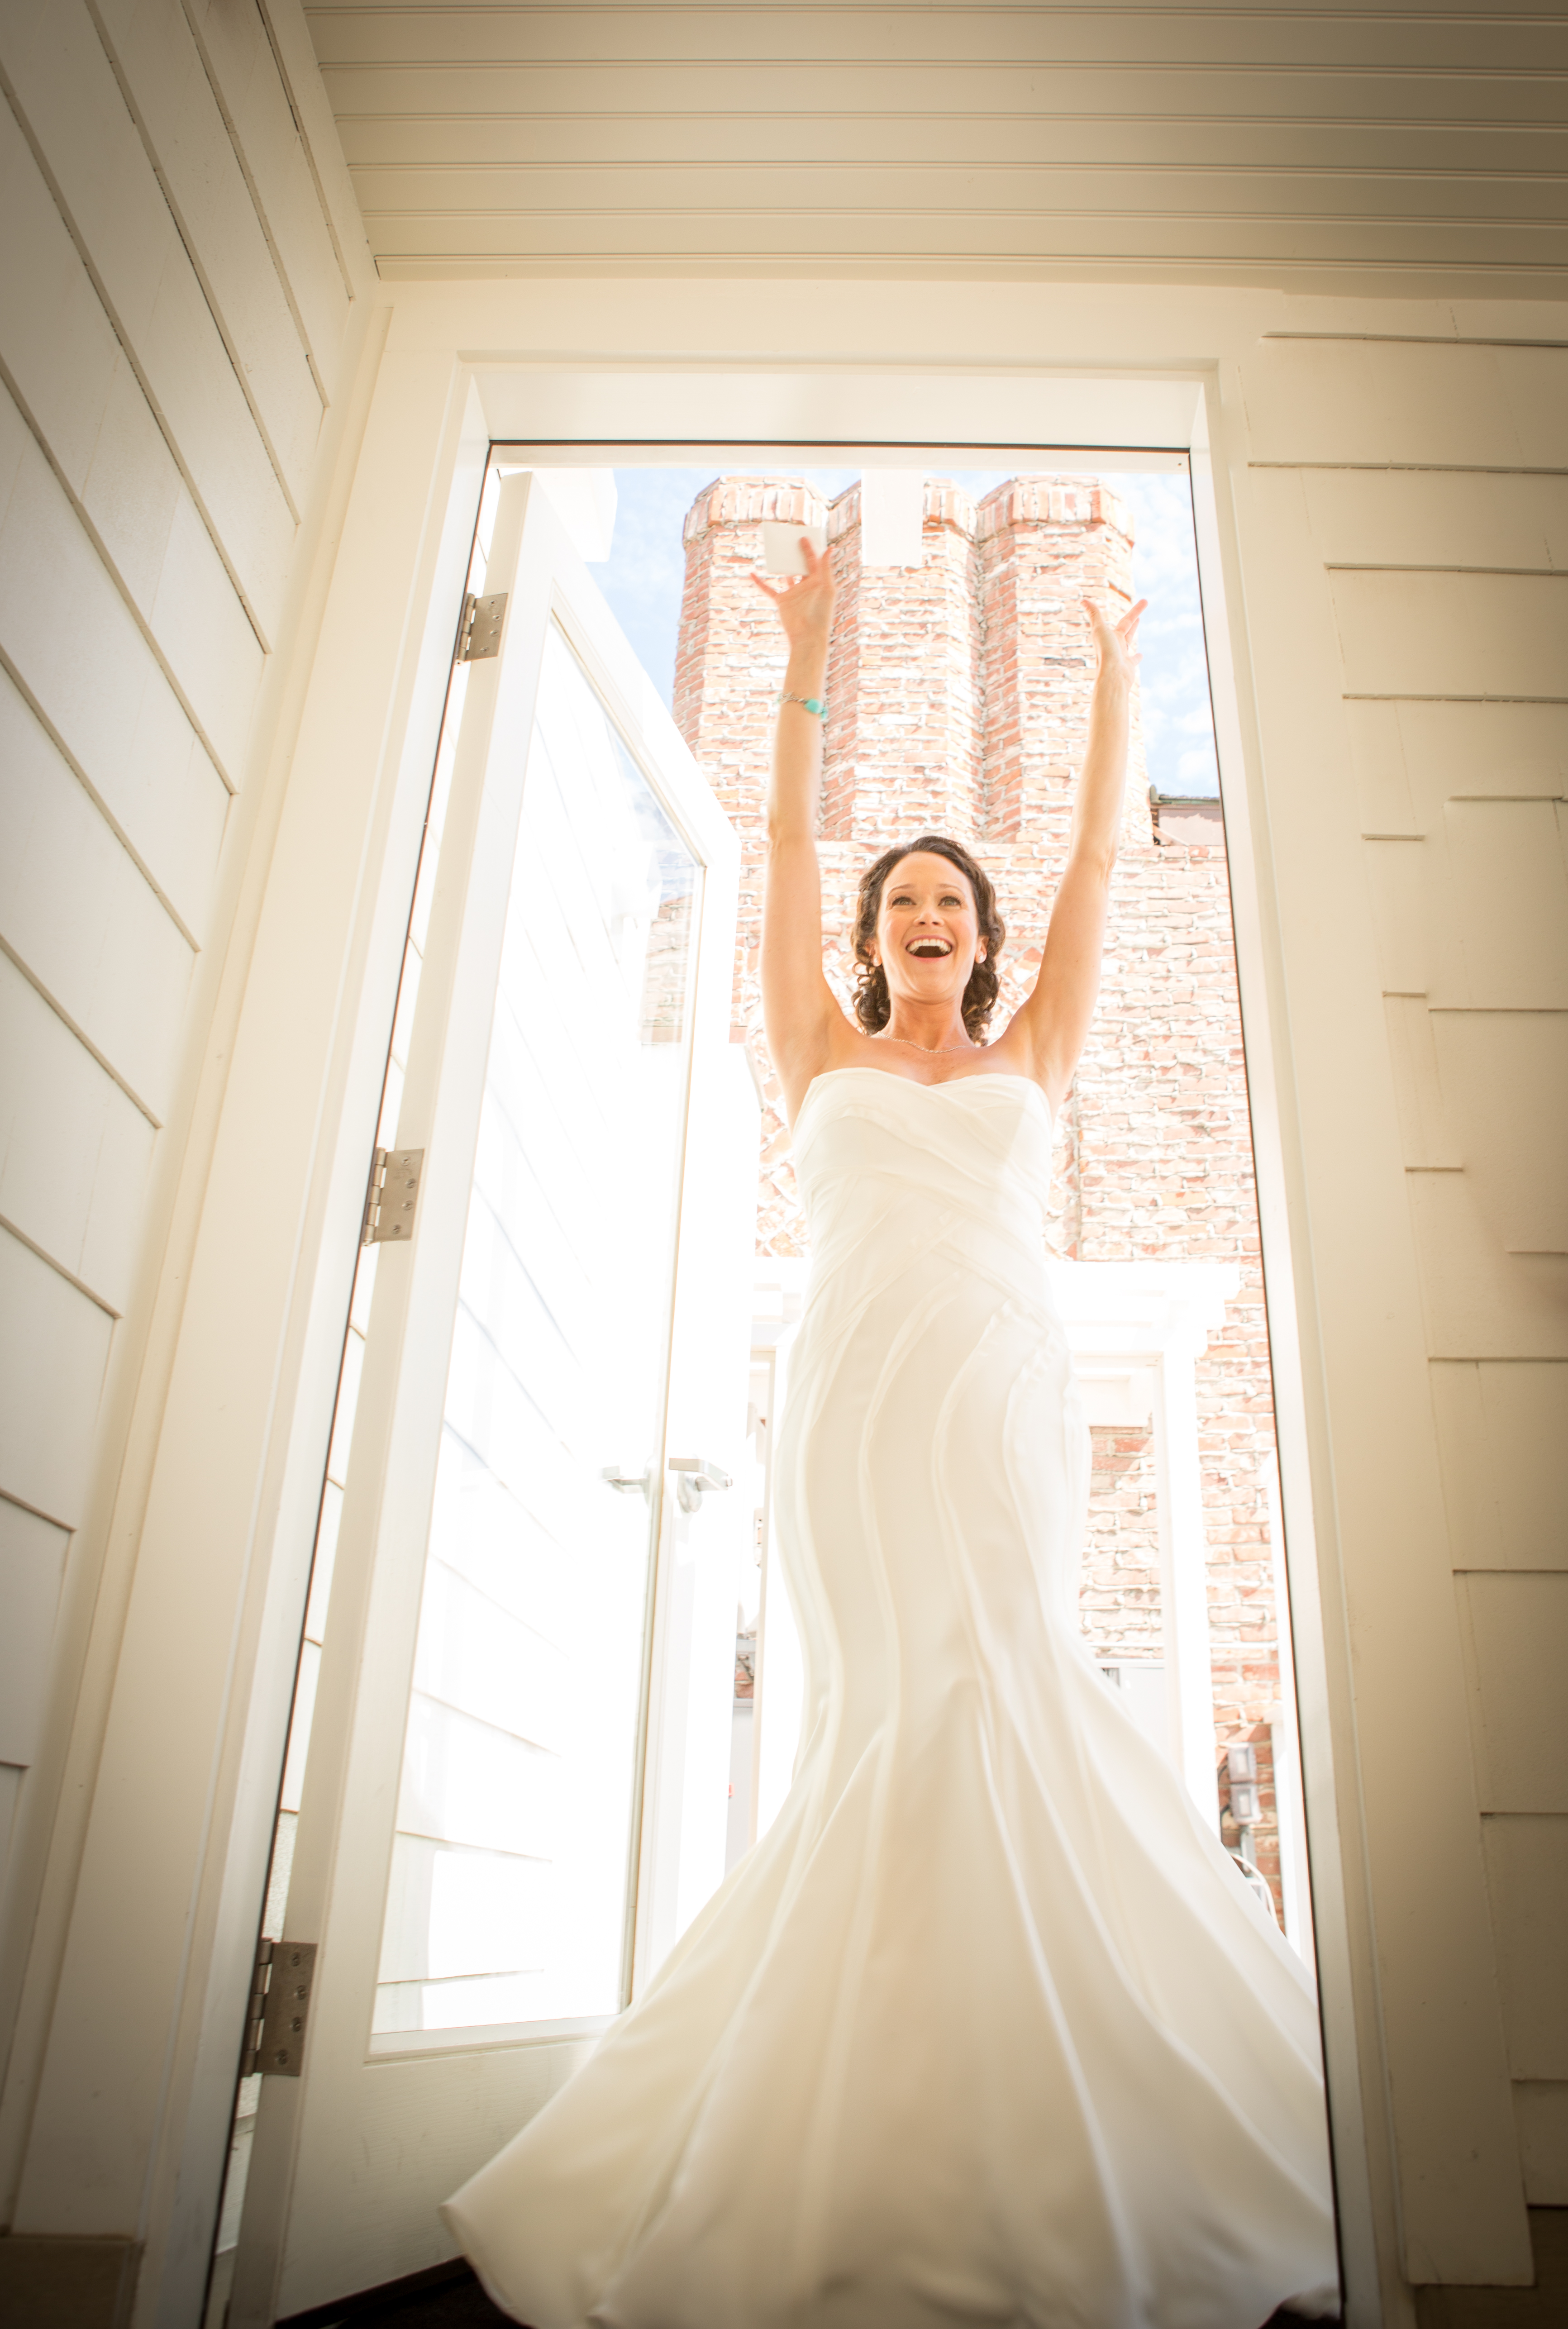 Happy Bride Wedding Photographer